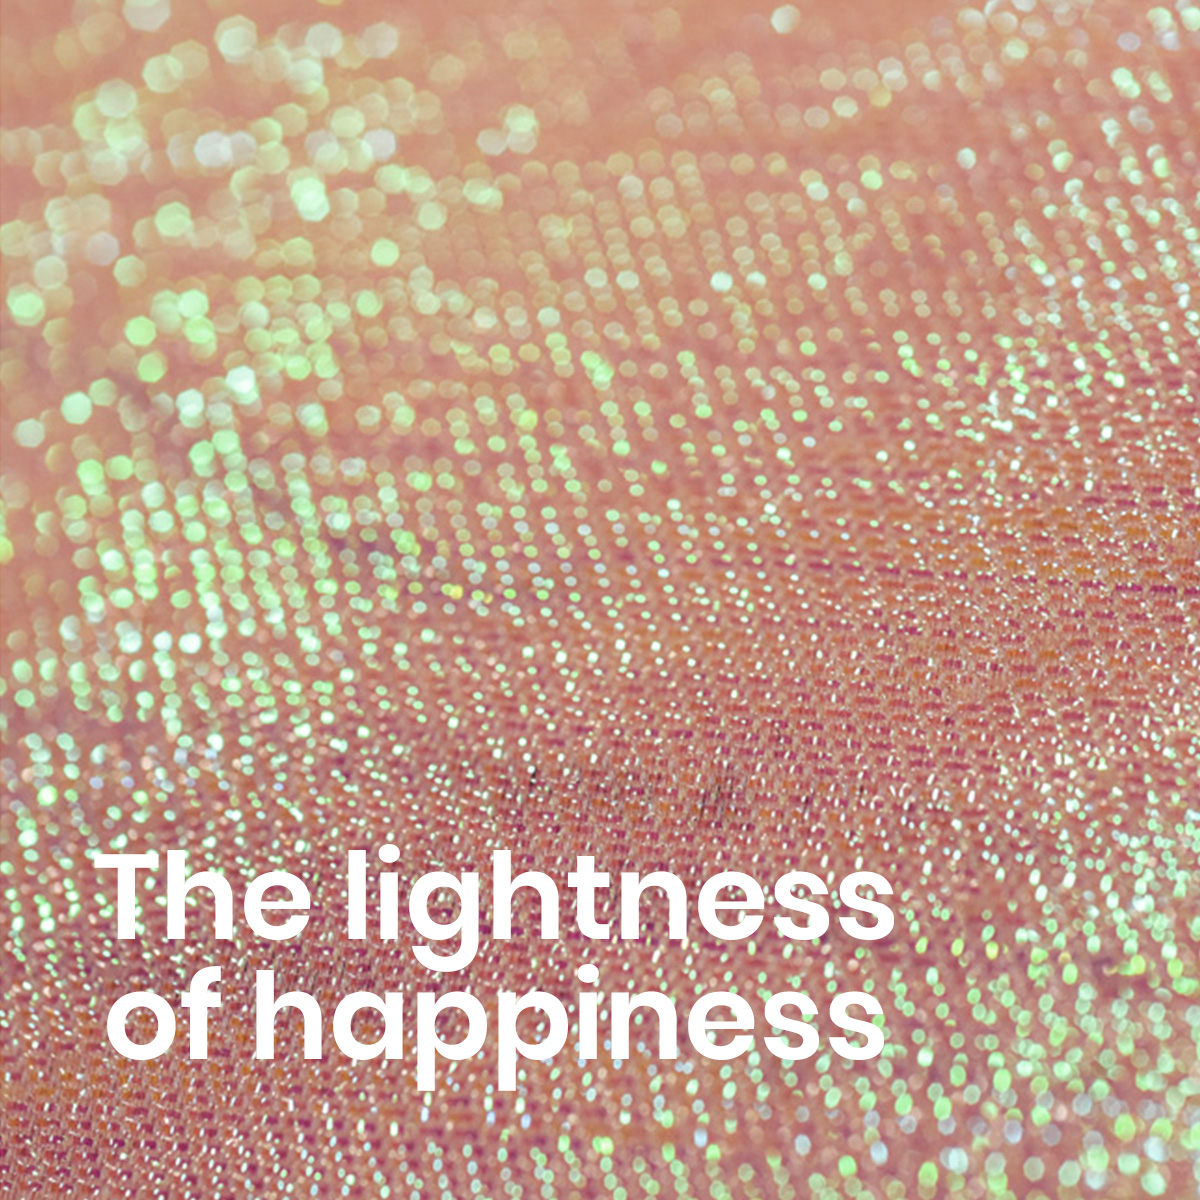 The lightness of happiness